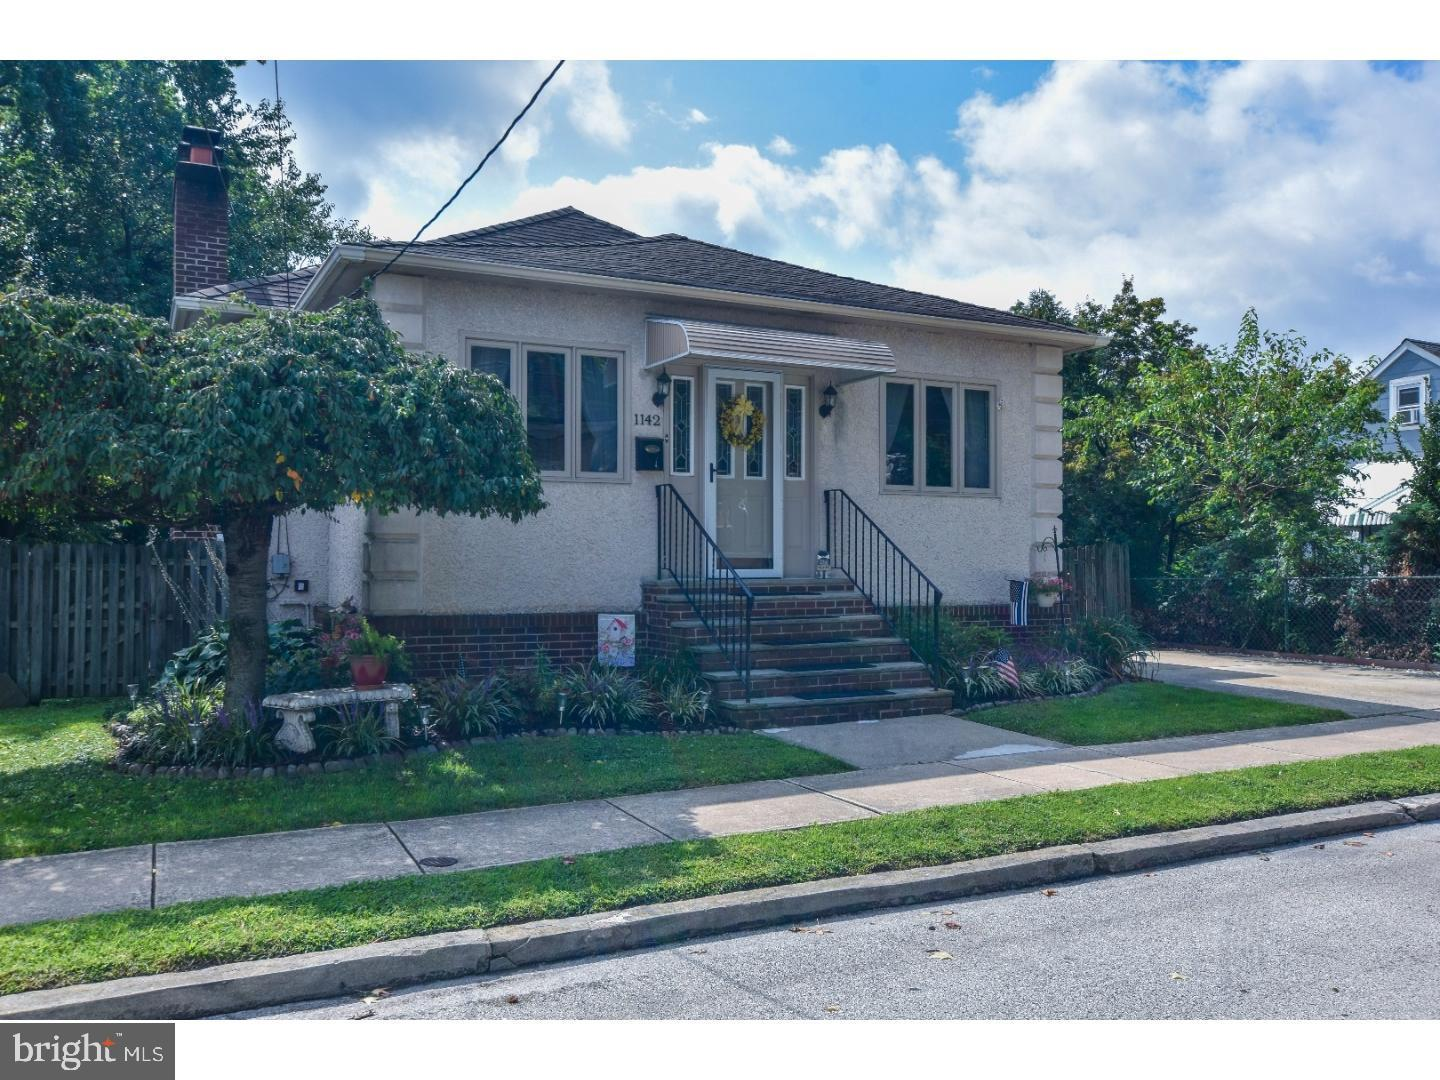 1142 BROAD STREET, DARBY, PA 19023